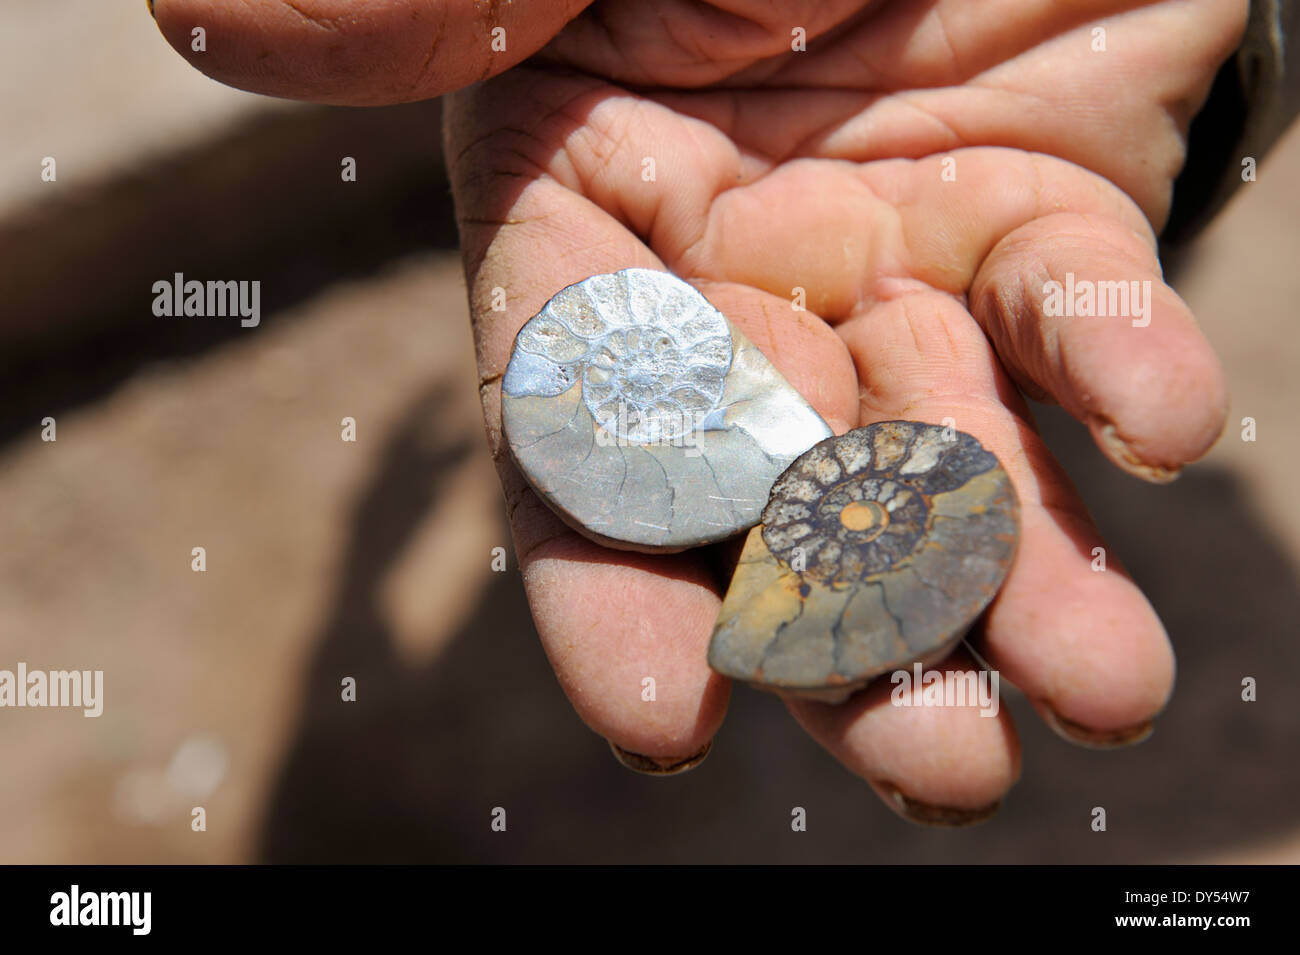 Two small fossil amenities, cut and polished, held in hand - Stock Image